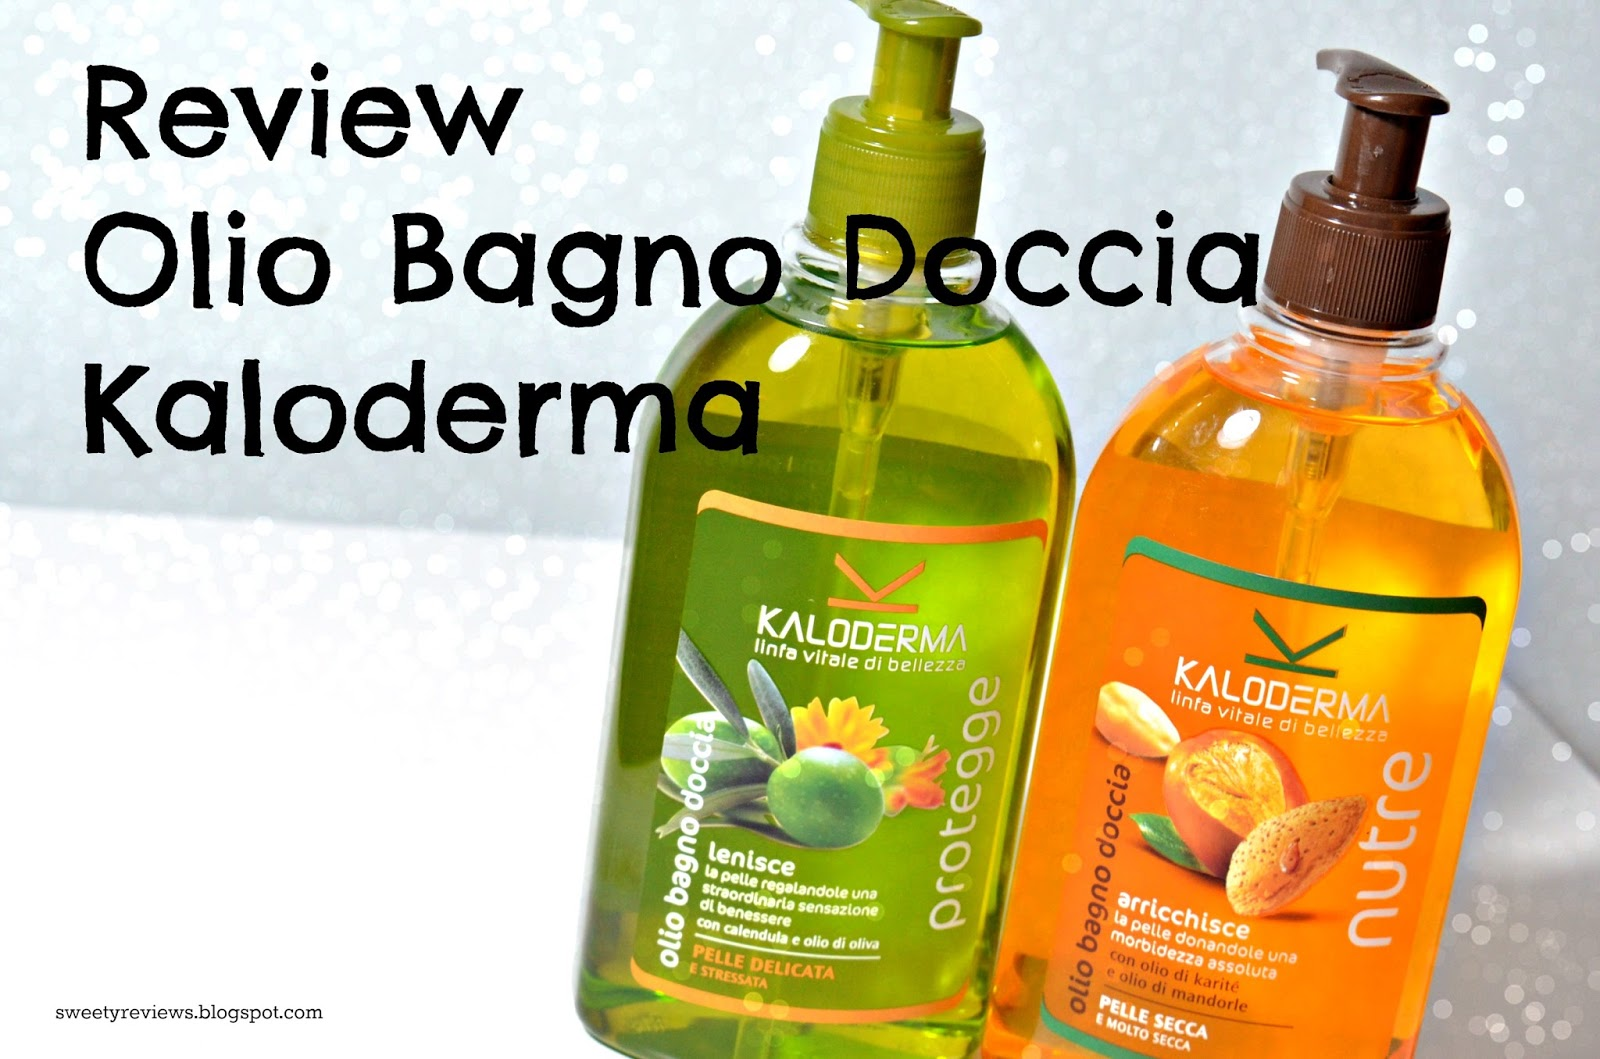 Sweety Reviews: [Review] Olio Bagno Doccia Kaloderma